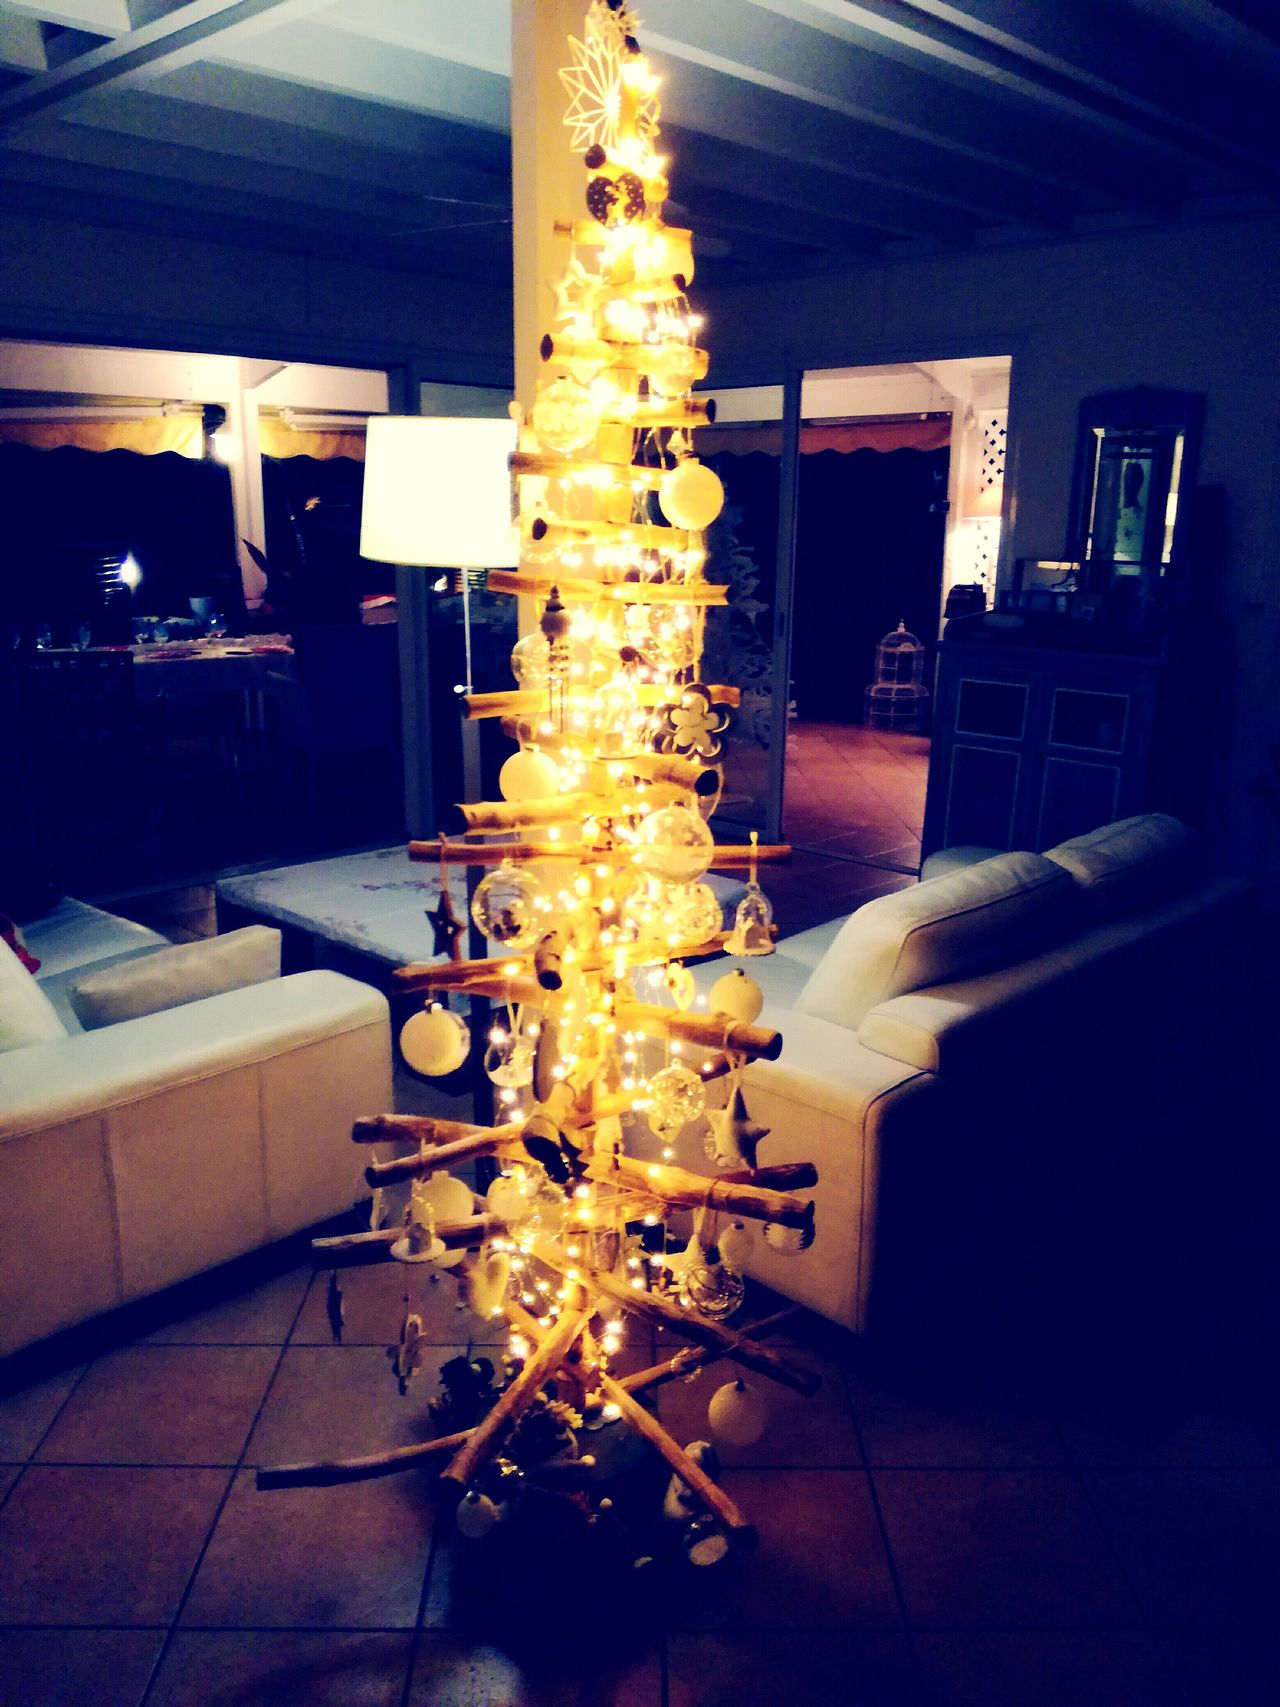 Sapin de noël . Chritsmass tree original Reunionisland 🌴 Eyeemphotography Huaweip9lite Christmas Decoration Decorating Noël ! Père Noël Christmas Decorations Celebration Christmas Christmas Tree Wedding Decoration Joyeux Noël Joyeux Noël ! Chritsmas Tree Decorating Traveling Home For The Holidays